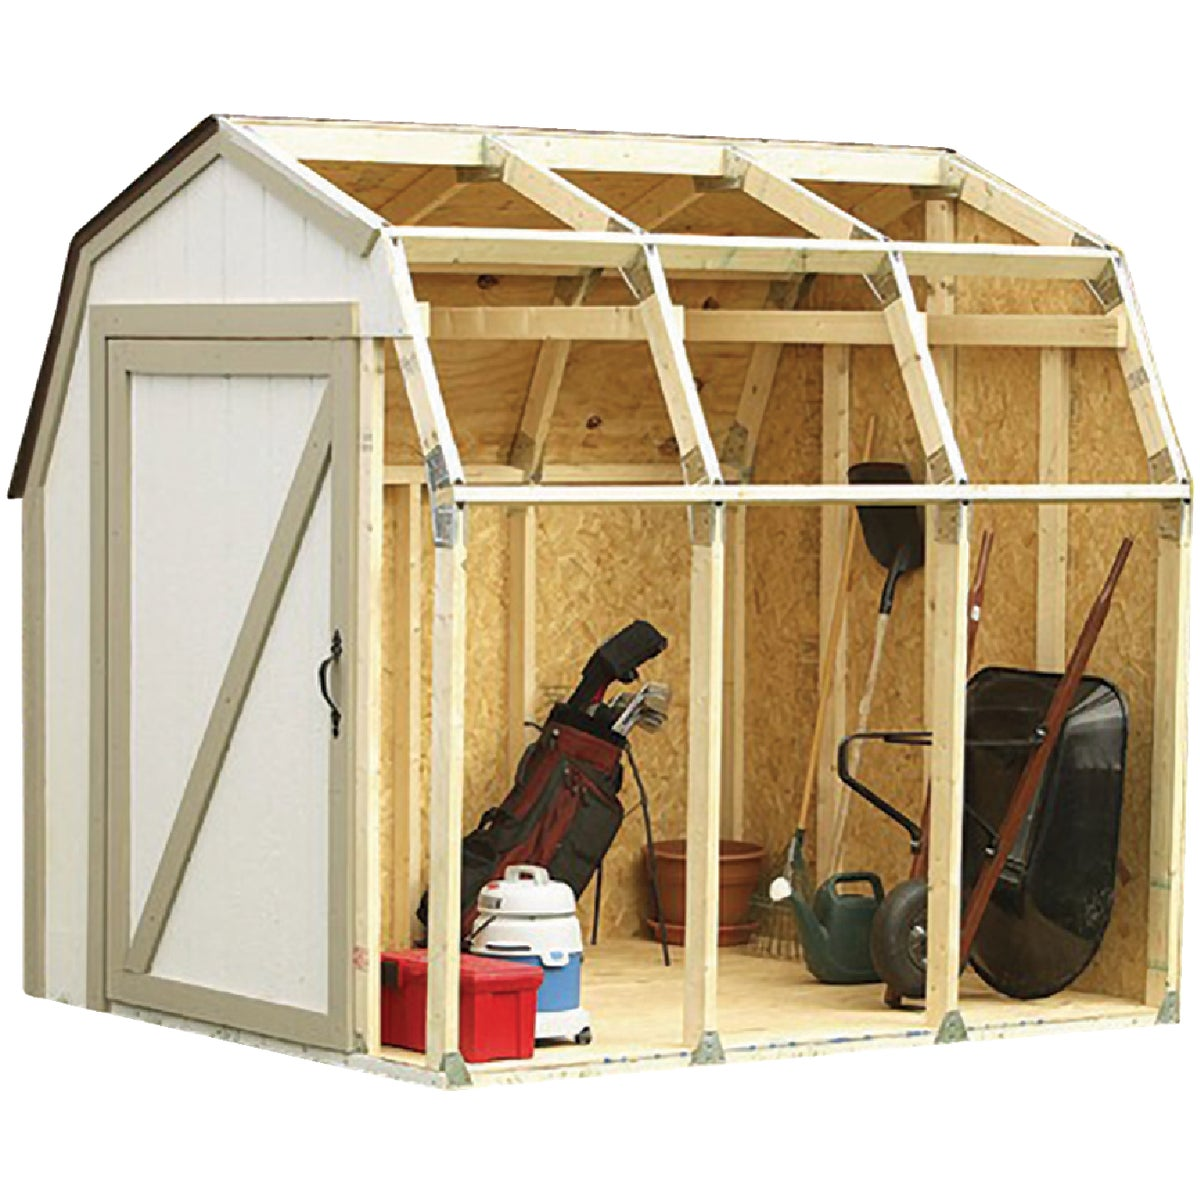 BARN STYLE SHED KIT